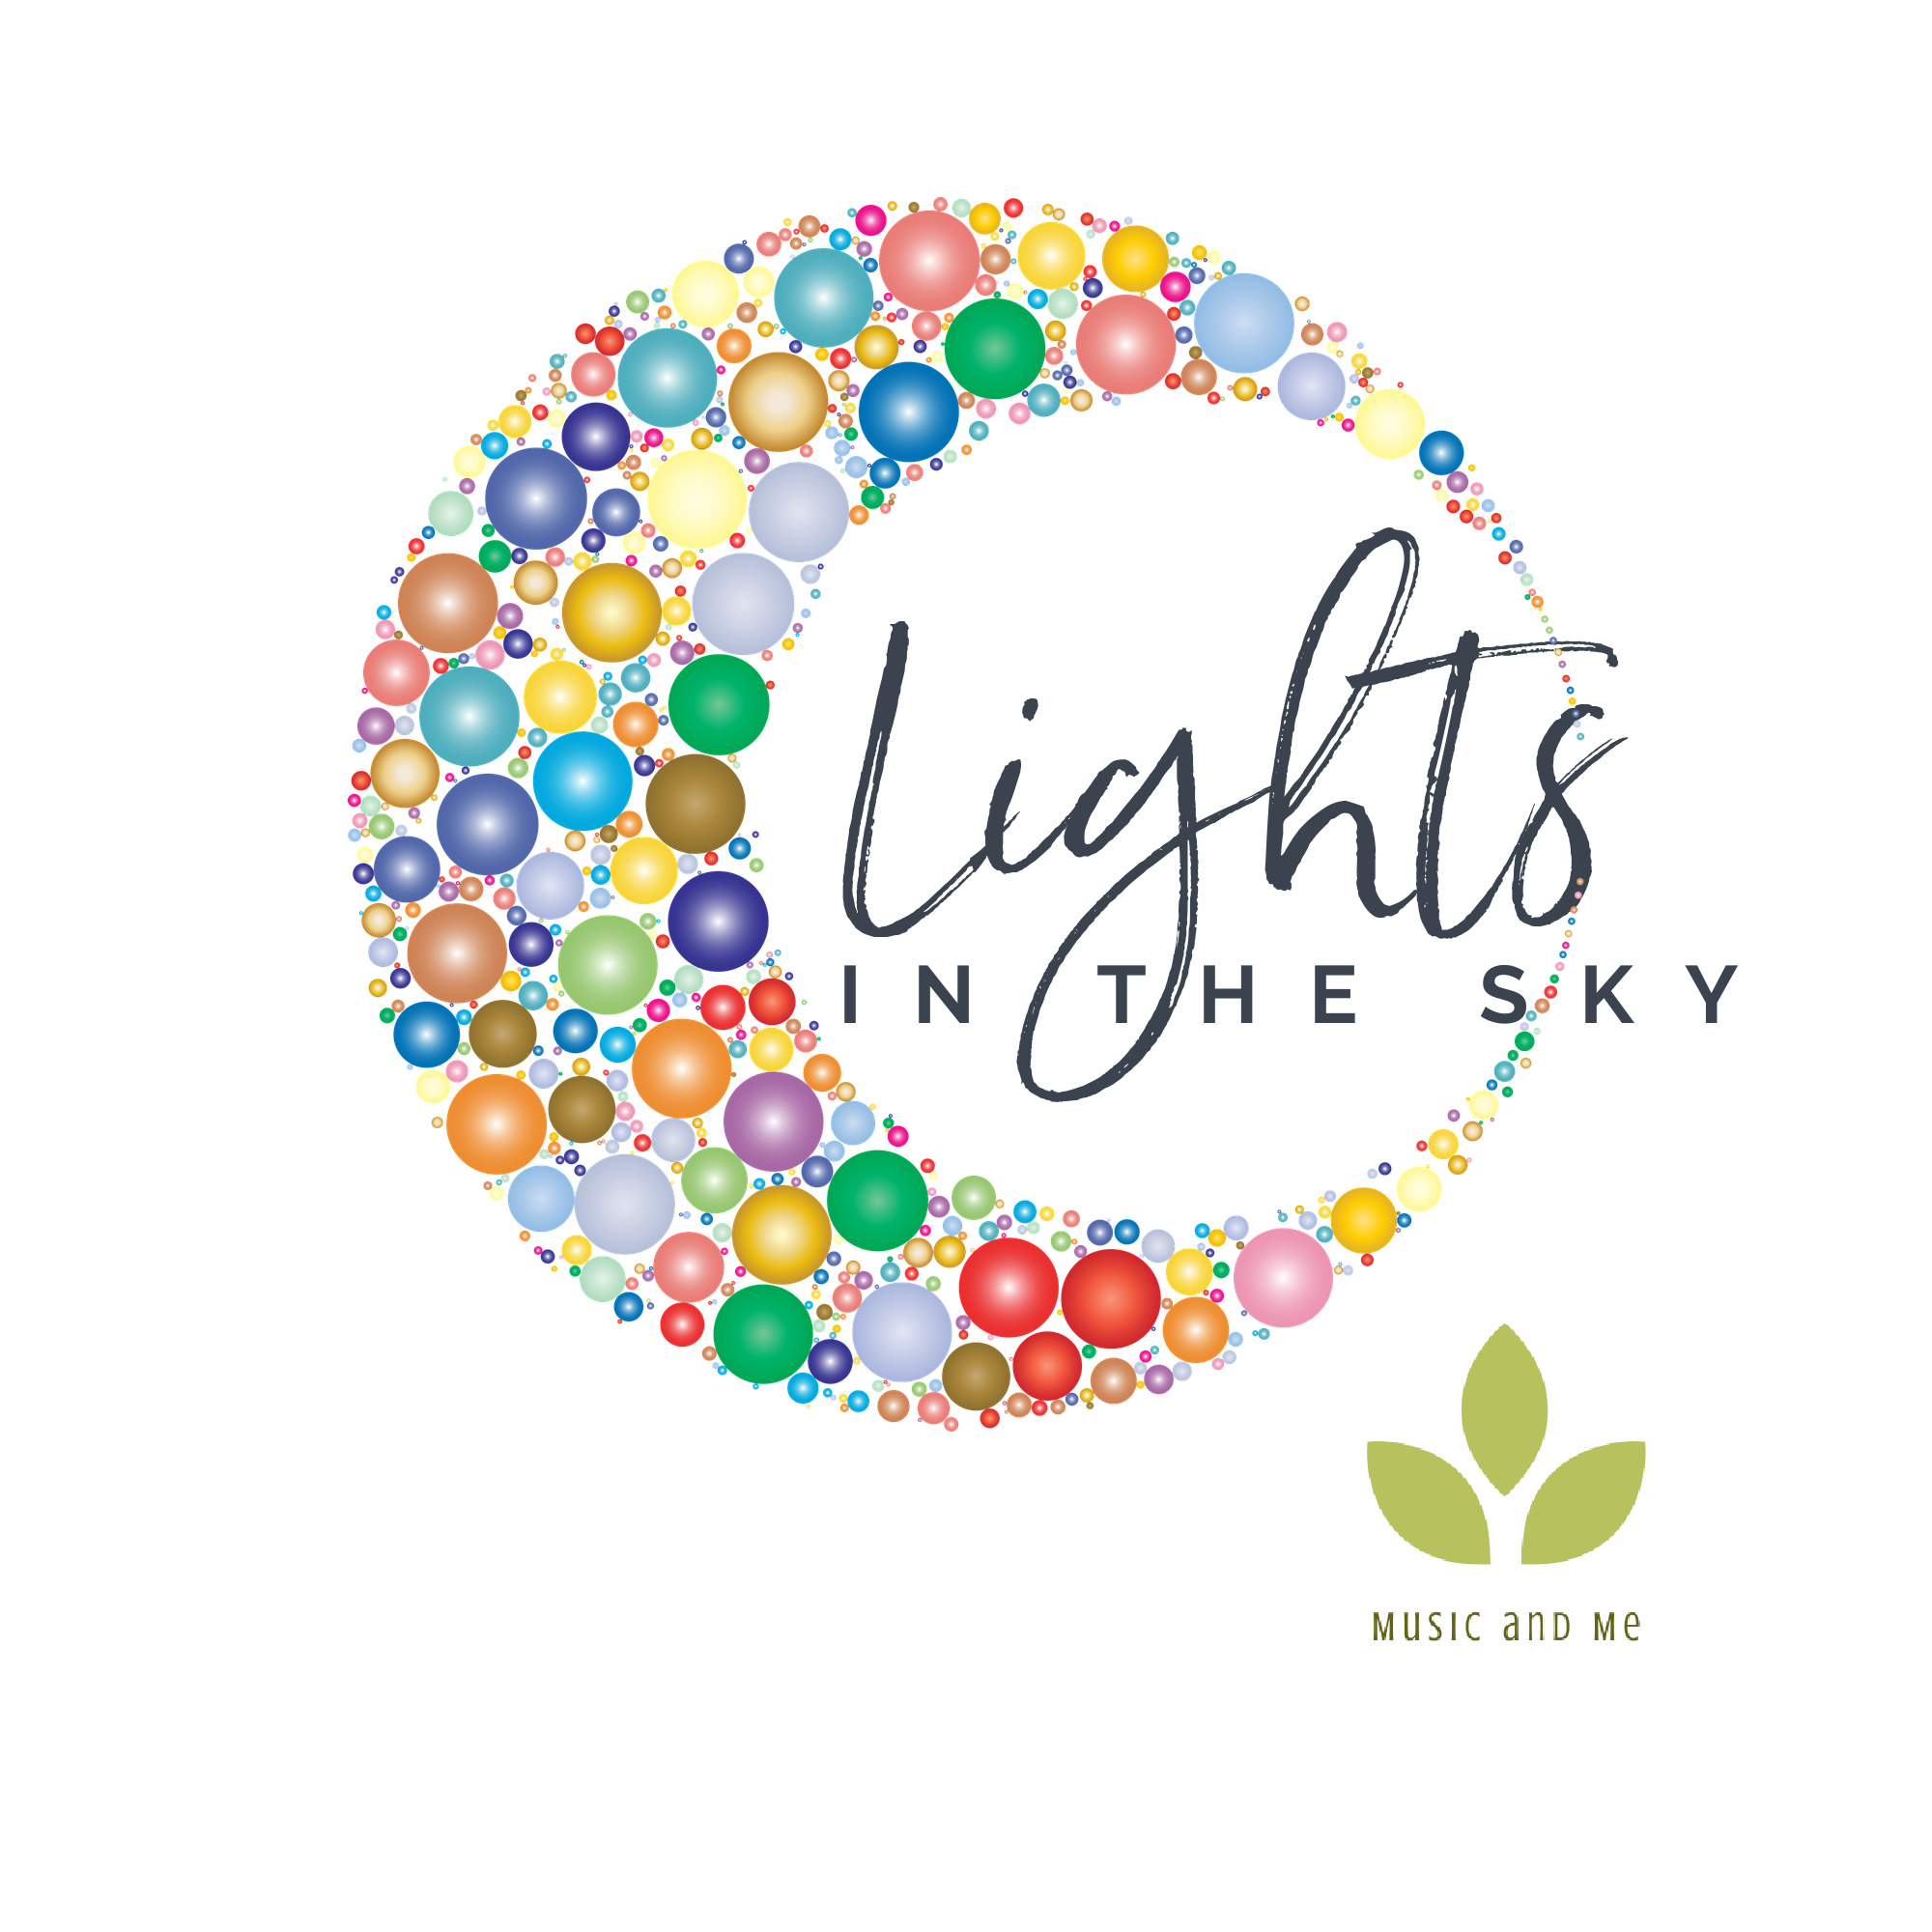 """colorful moon design with words """"Lights in the sky"""" by Music and Me"""